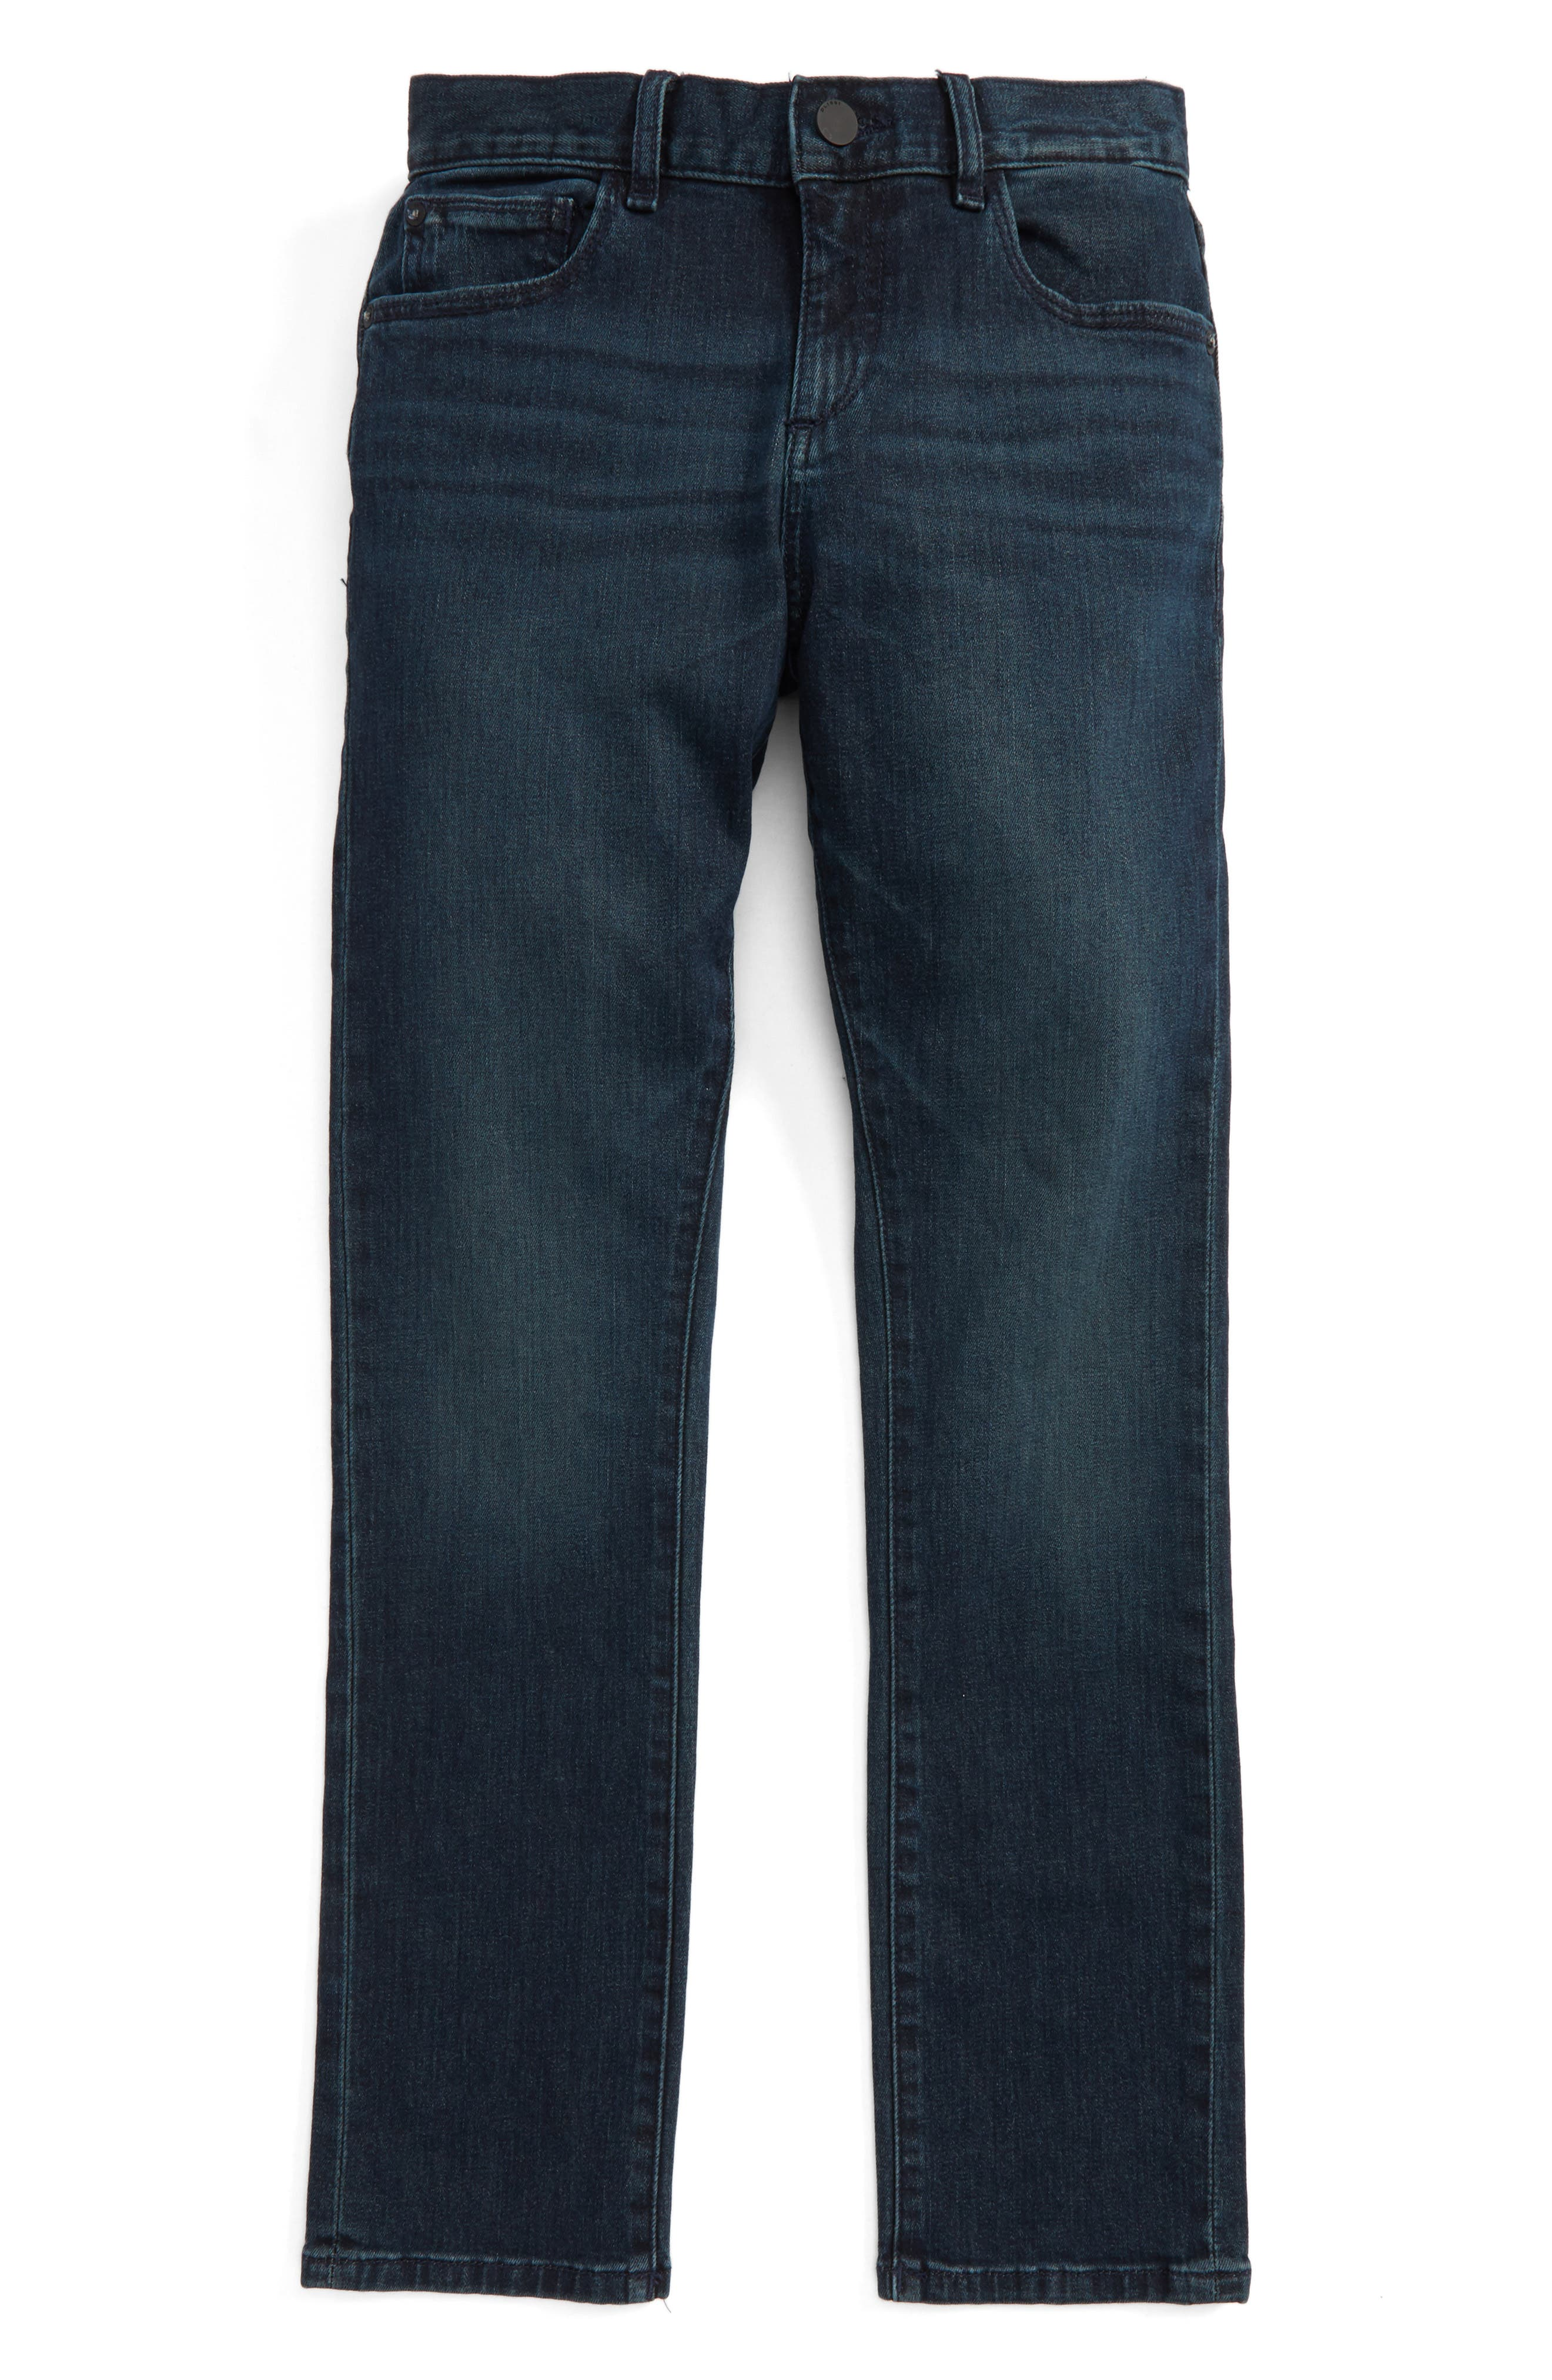 DL1961 Brady Slim Fit Jeans